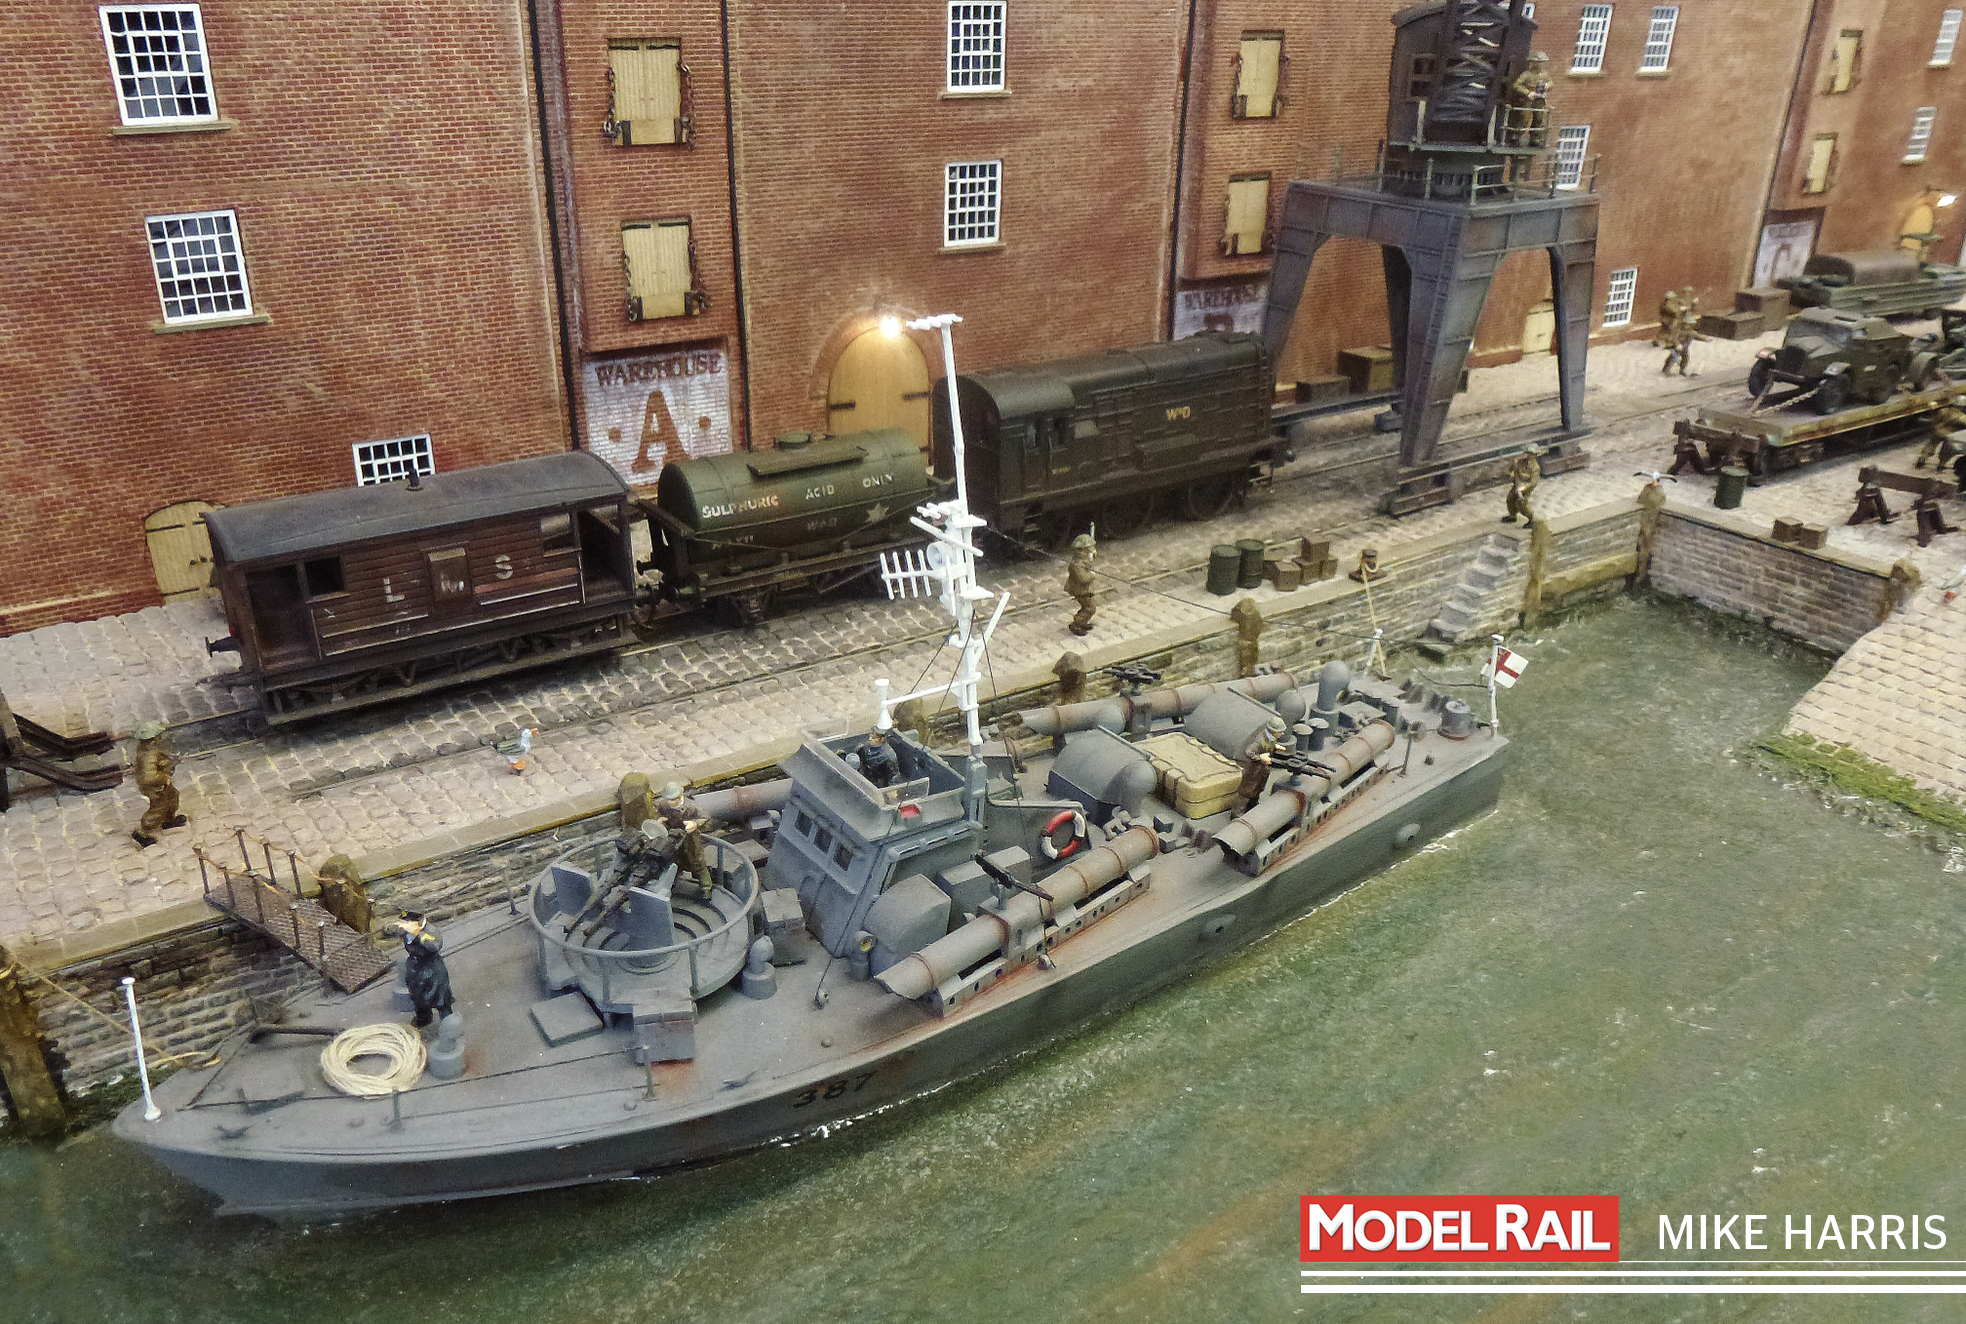 James framed his entire layout around this Airfix Torpedo Boat MIKE HARRIS